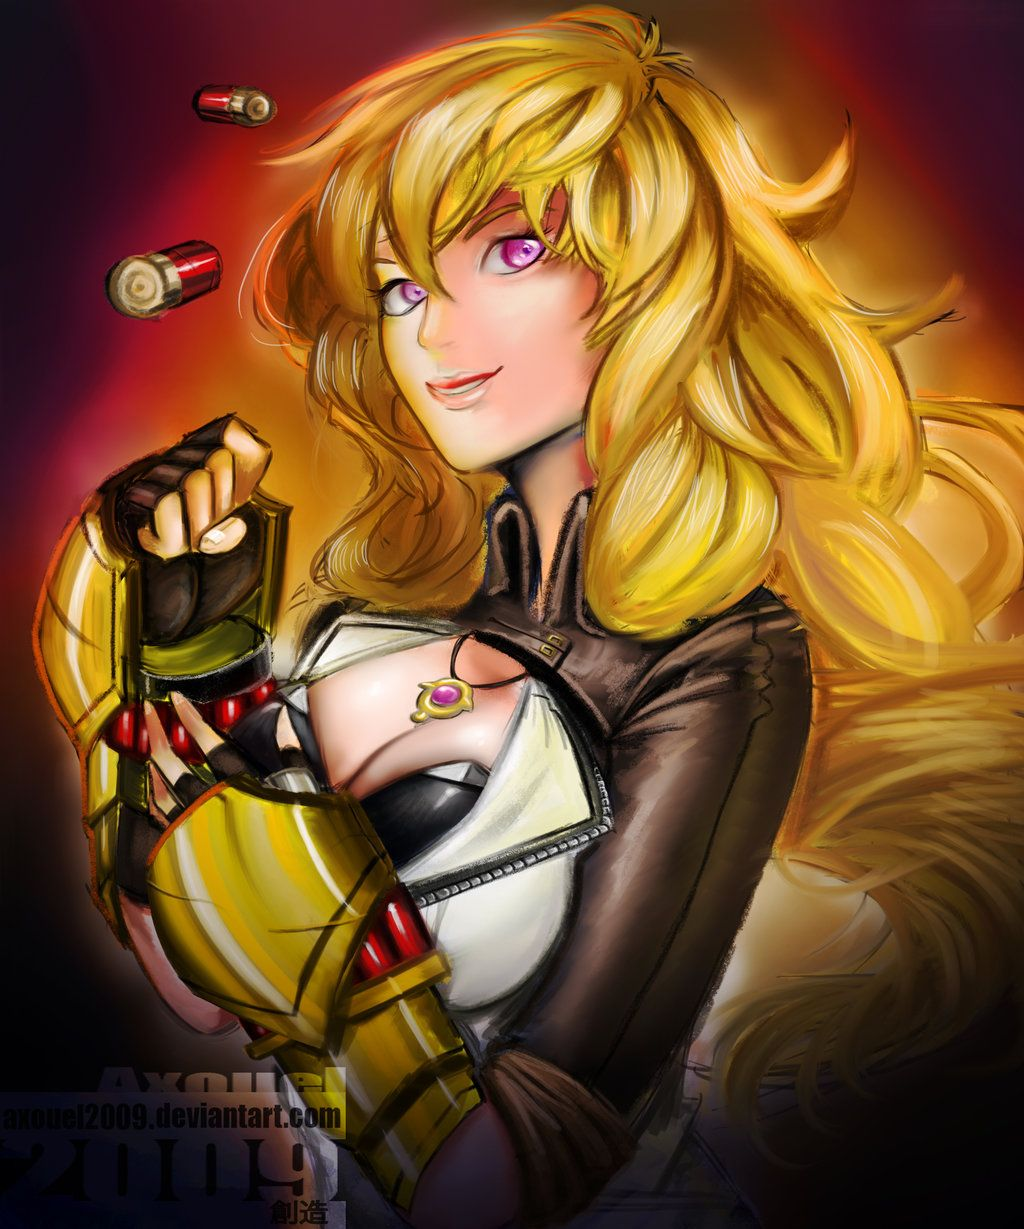 Yang Xiao Long Wallpaper: Stupidprivate: Yang Xiao Long Of Team RWBY By Rooster